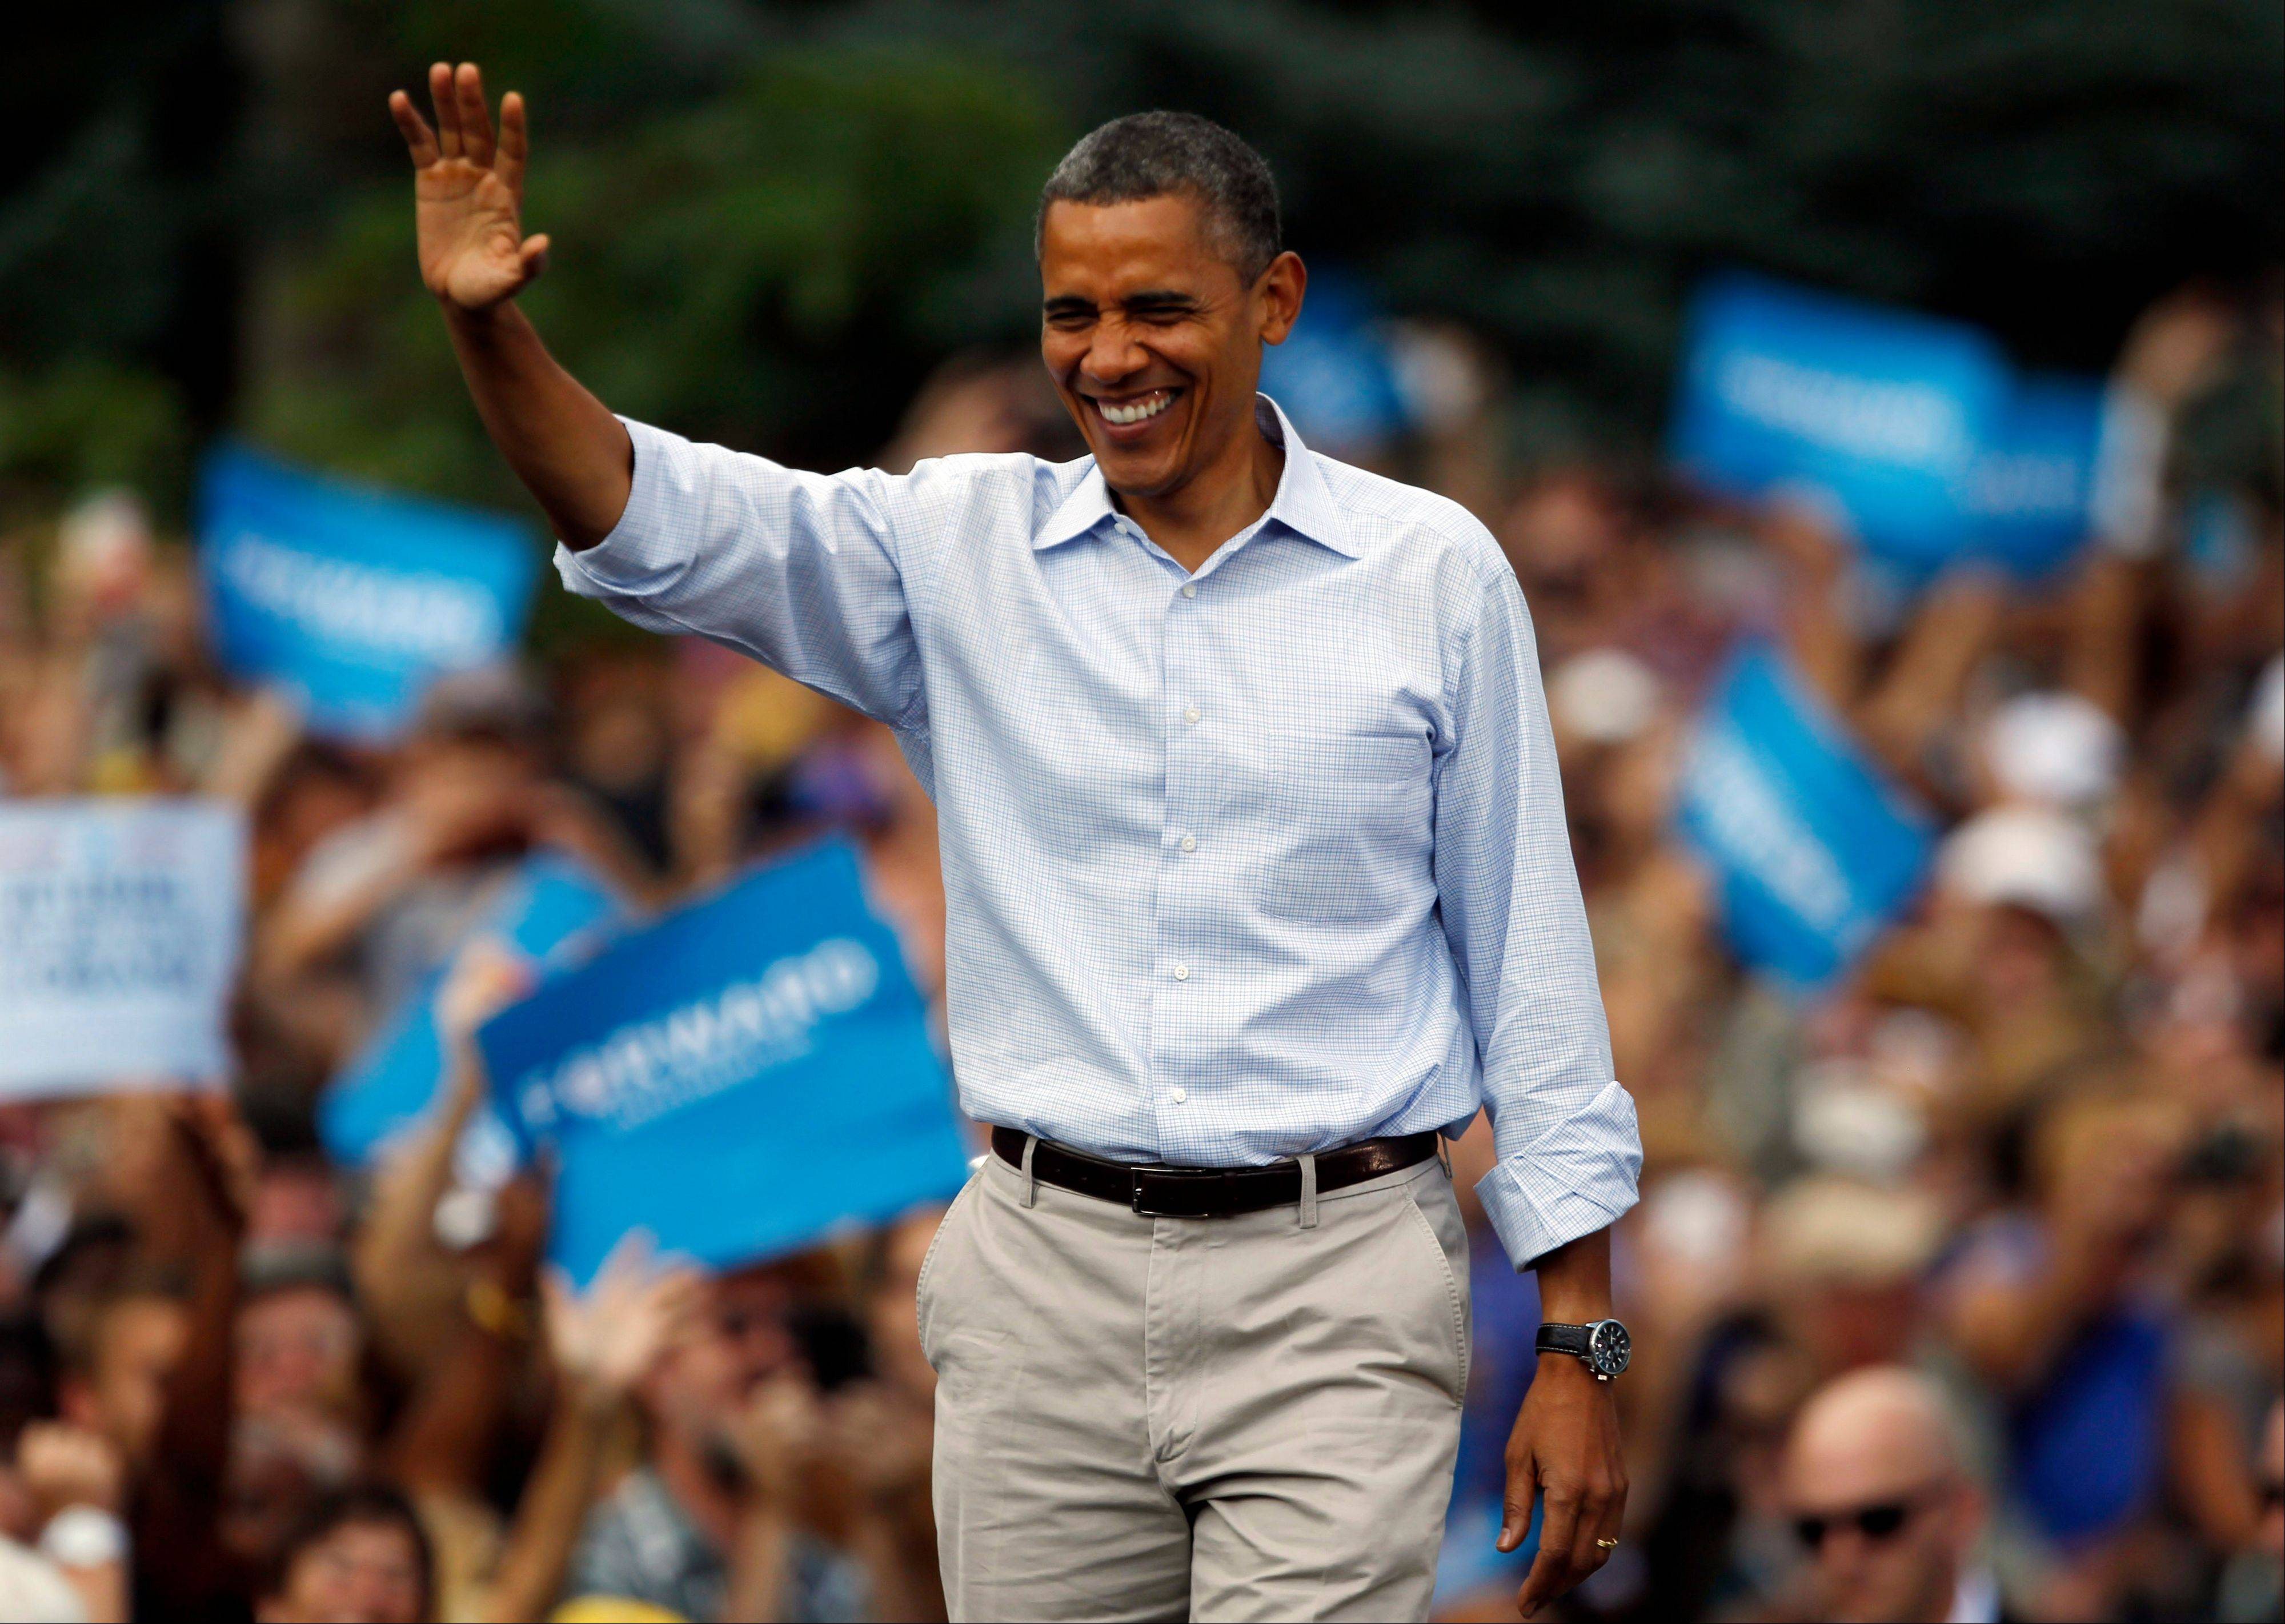 President Barack Obama waves as he walks on stage during campaign stop on the campus of the University of Colorado in Boulder, Colo., Sunday. Why couldn't he deliver the change he promised four years ago? The answer depends on what political party one listens to.